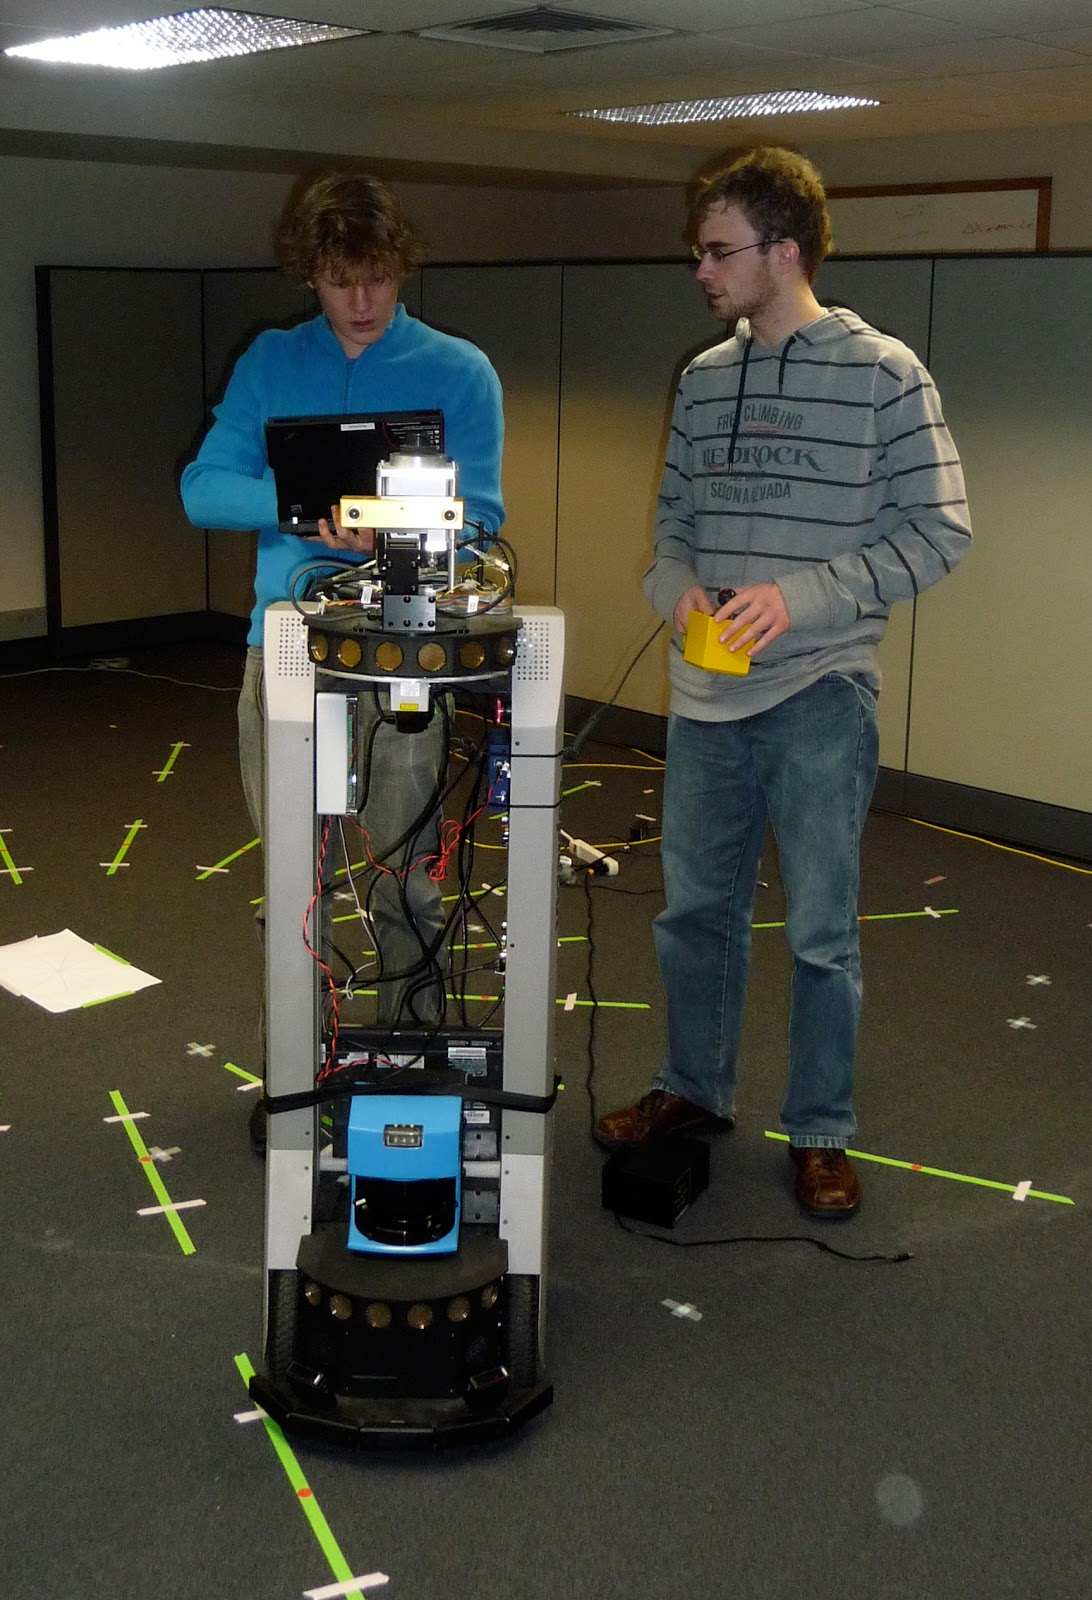 Working with the robot